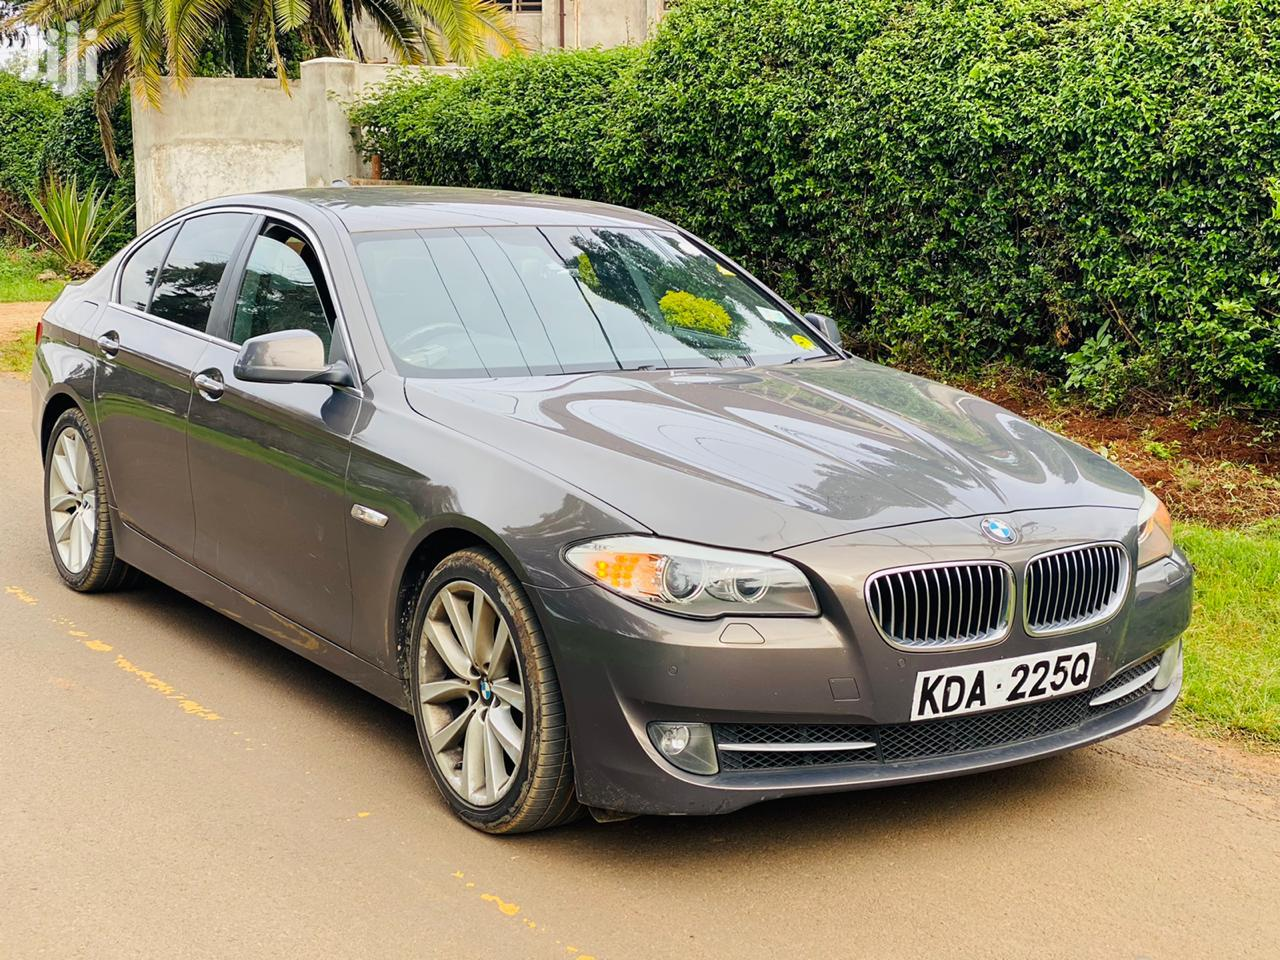 Archive: BMW 528i 2013 Gray